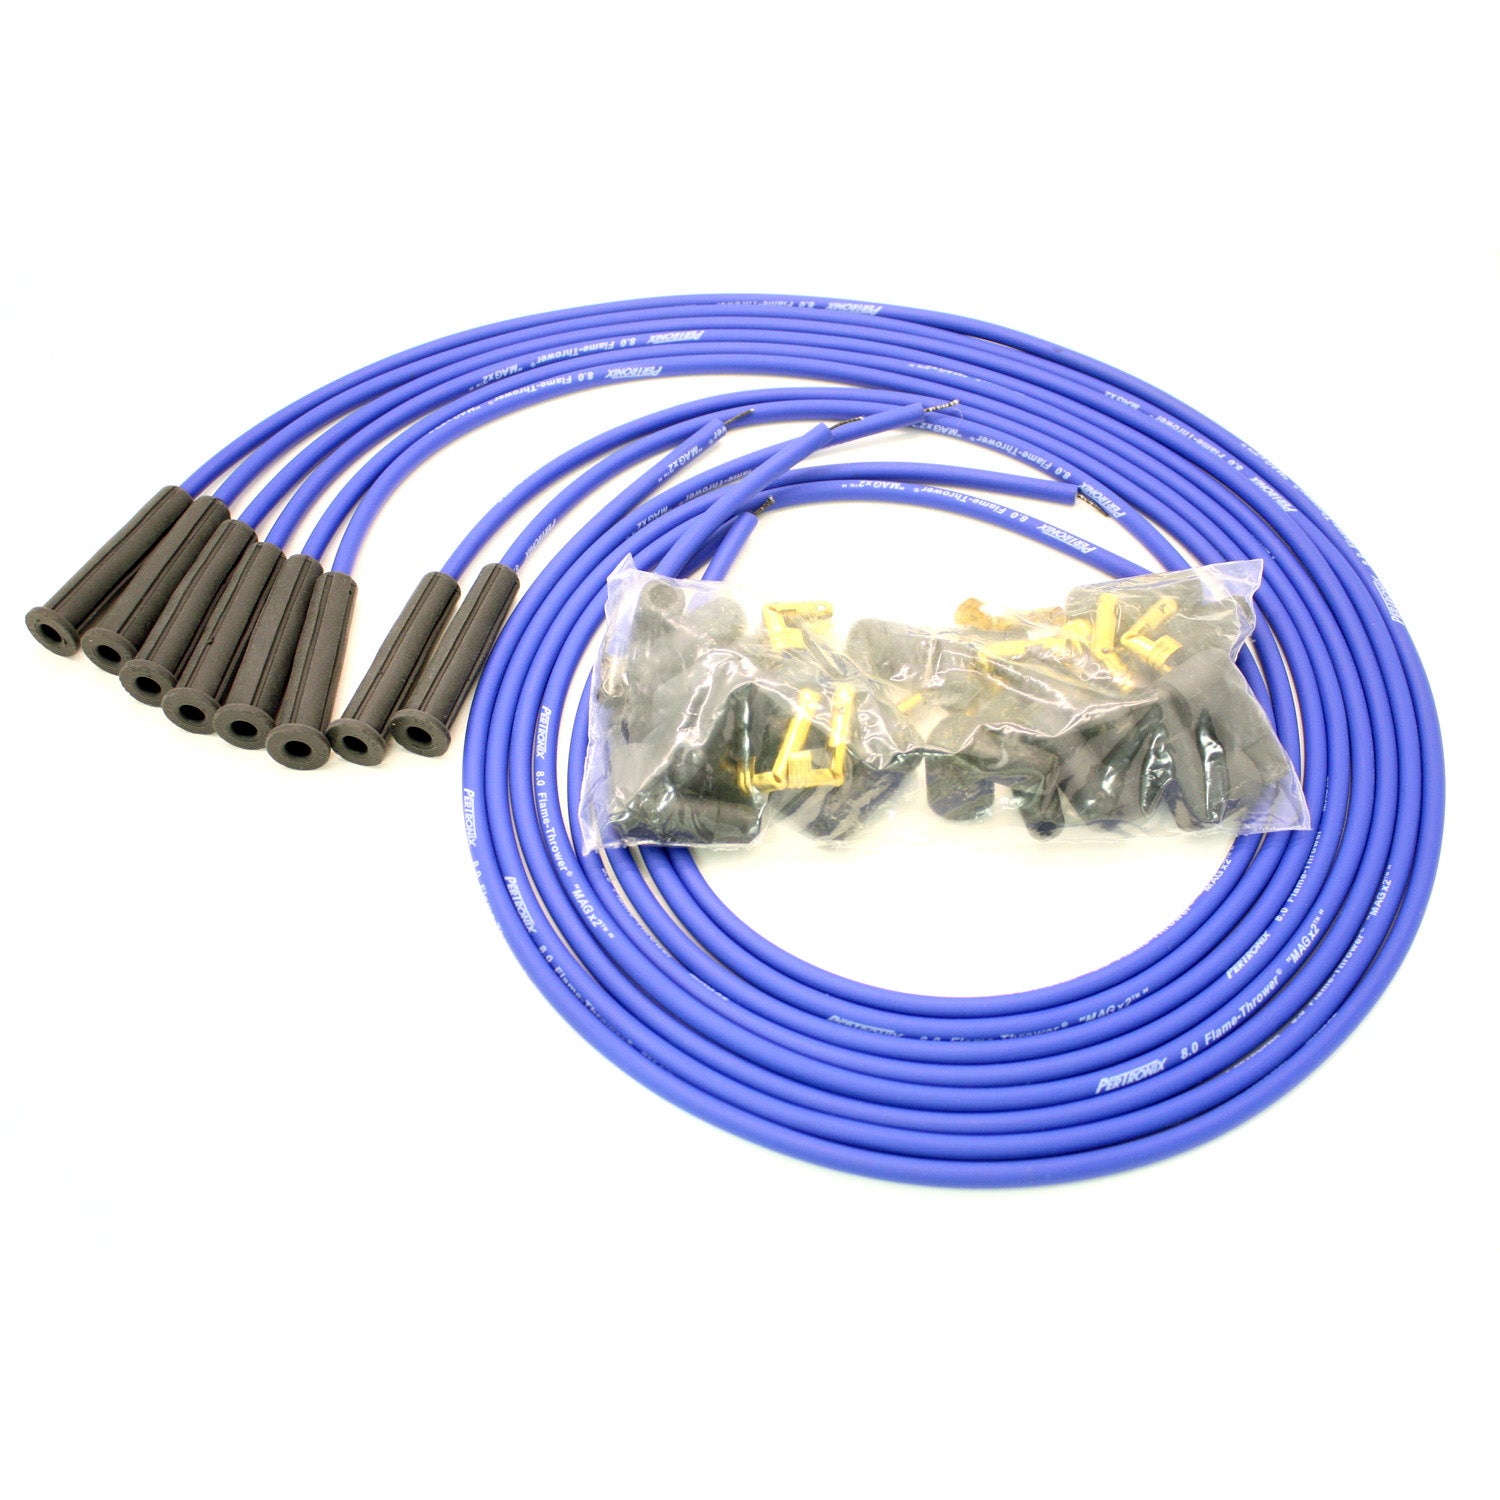 PerTronix 808380 Flame-Thrower Spark Plug Wires 8 cyl 8mm Universal 180 Degree Blue